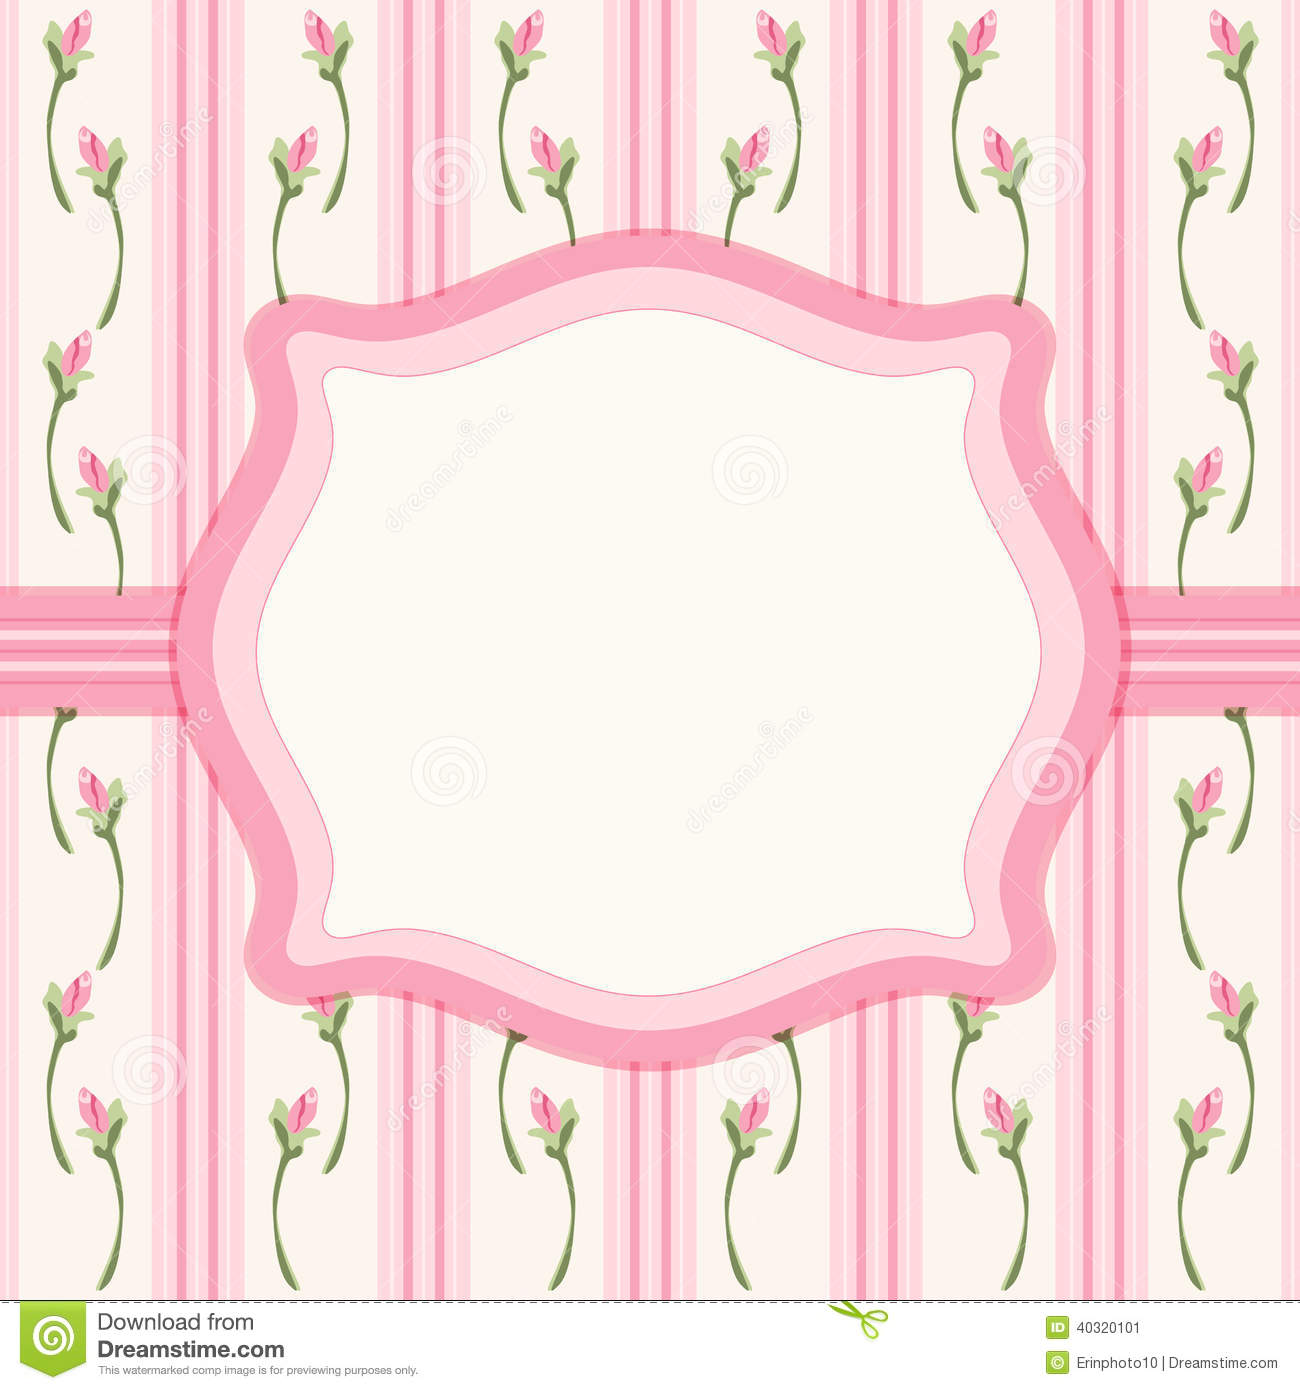 Vintage Frame 7 Stock Vector Illustration Of Garden 40320101